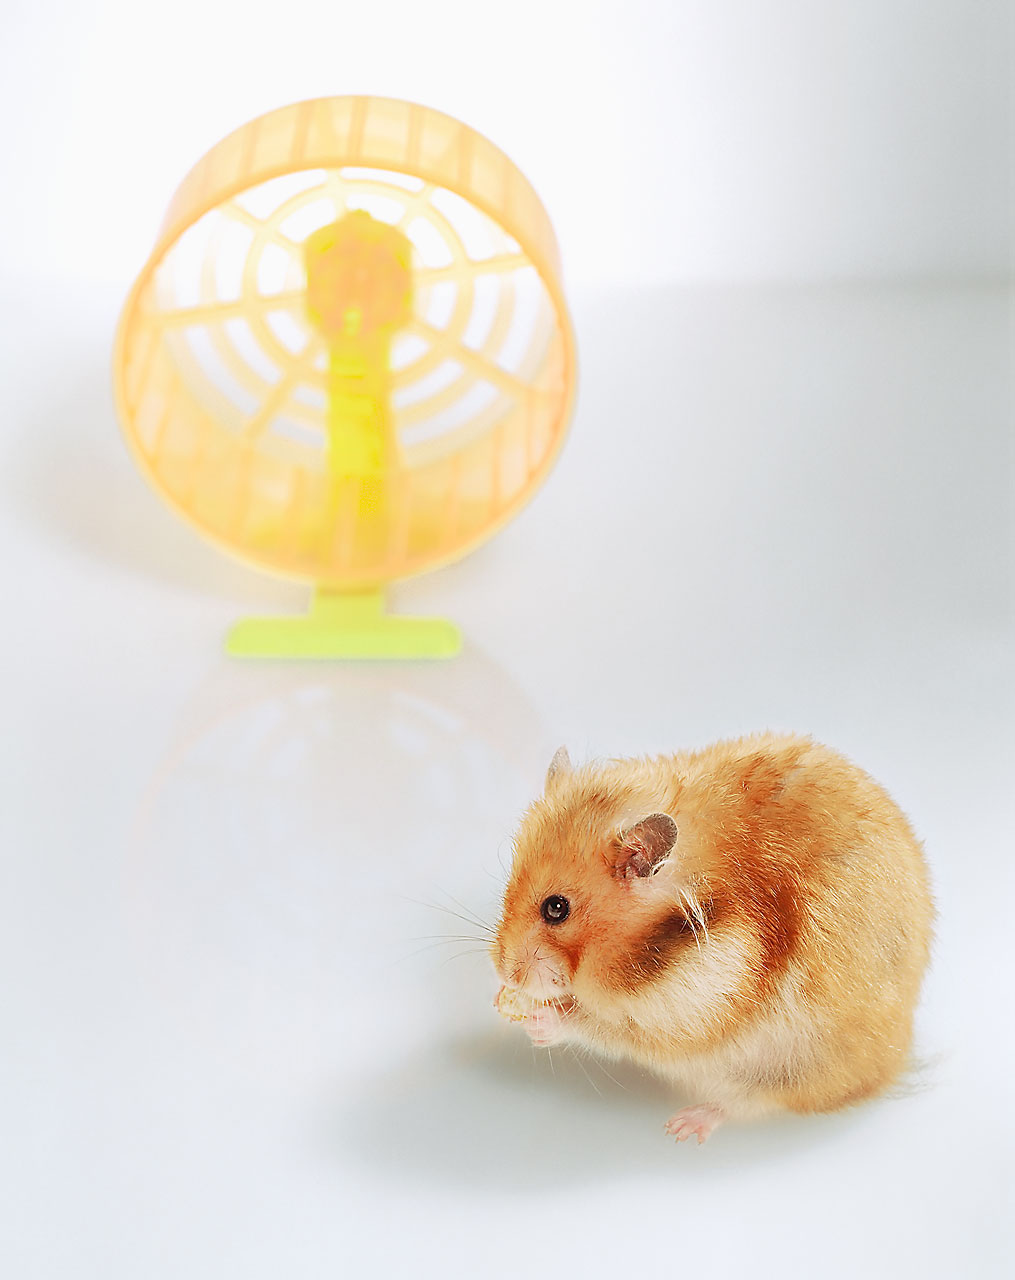 Sabine-Scheer-photography-goldhamster-hamsterrad-wheel